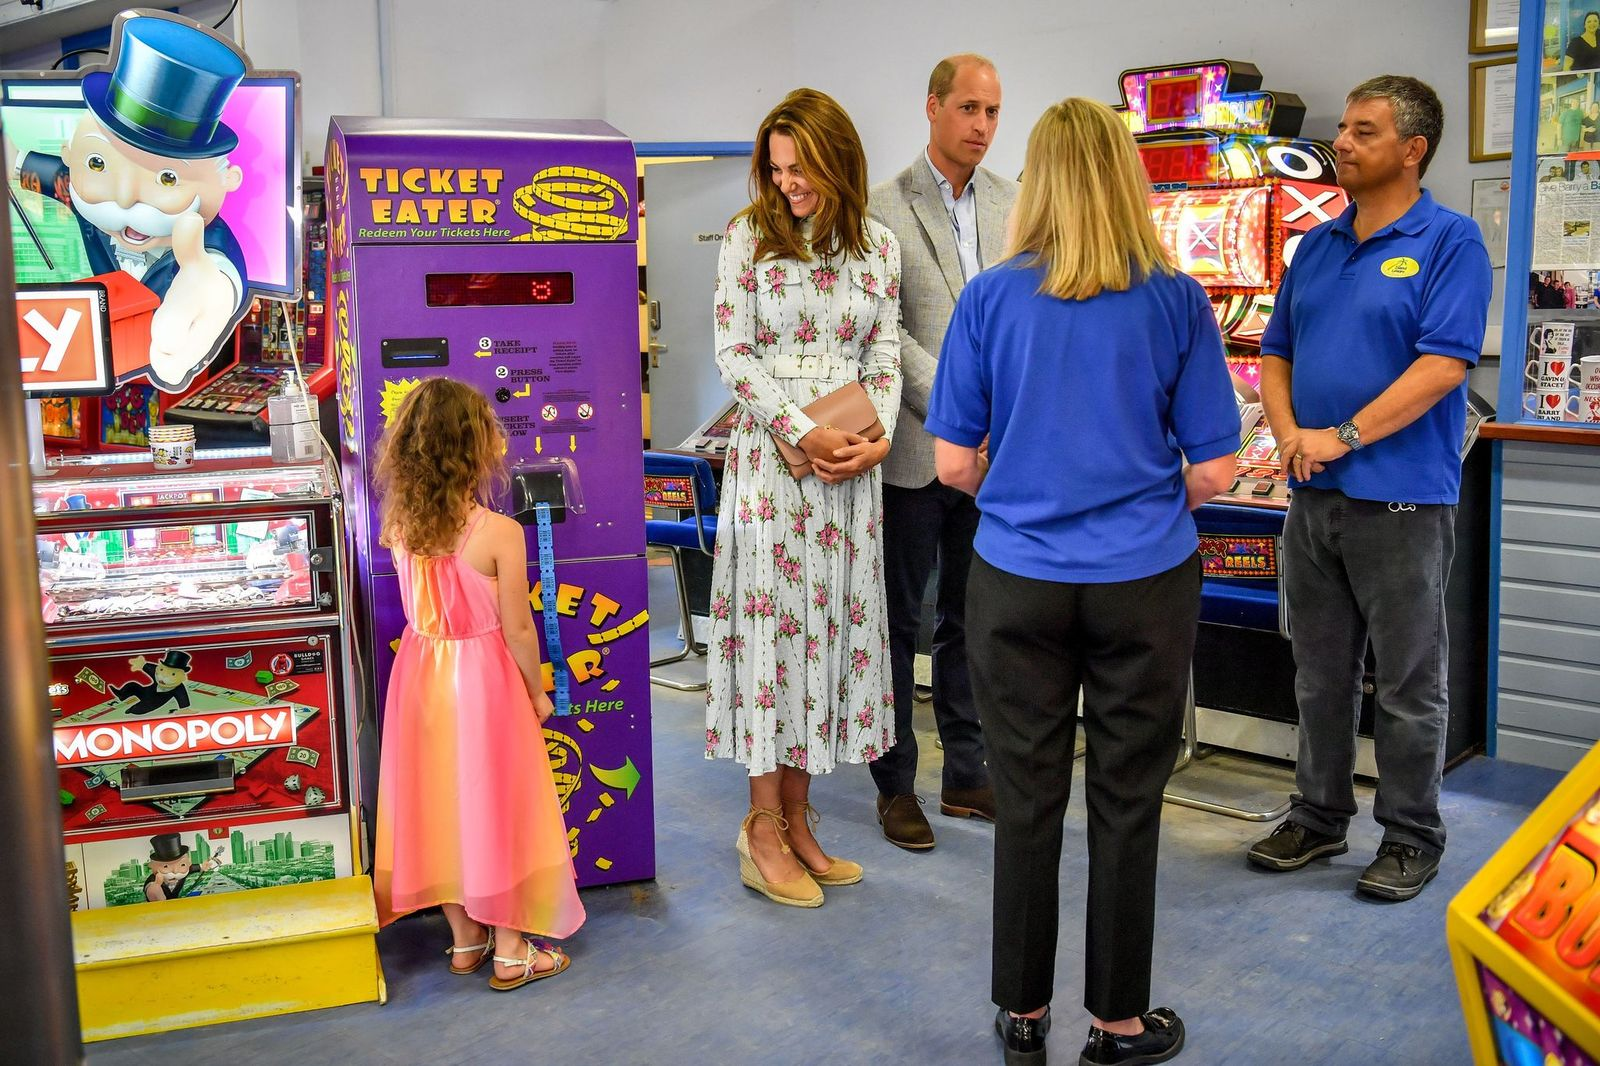 Duchess Kate and Prince Williamat Island Leisure Amusement Arcade during their visit to Barry Island, South Wales on August 5, 2020, in Barry, Wales | Photo:Ben Birchall - WPA Pool/Getty Images